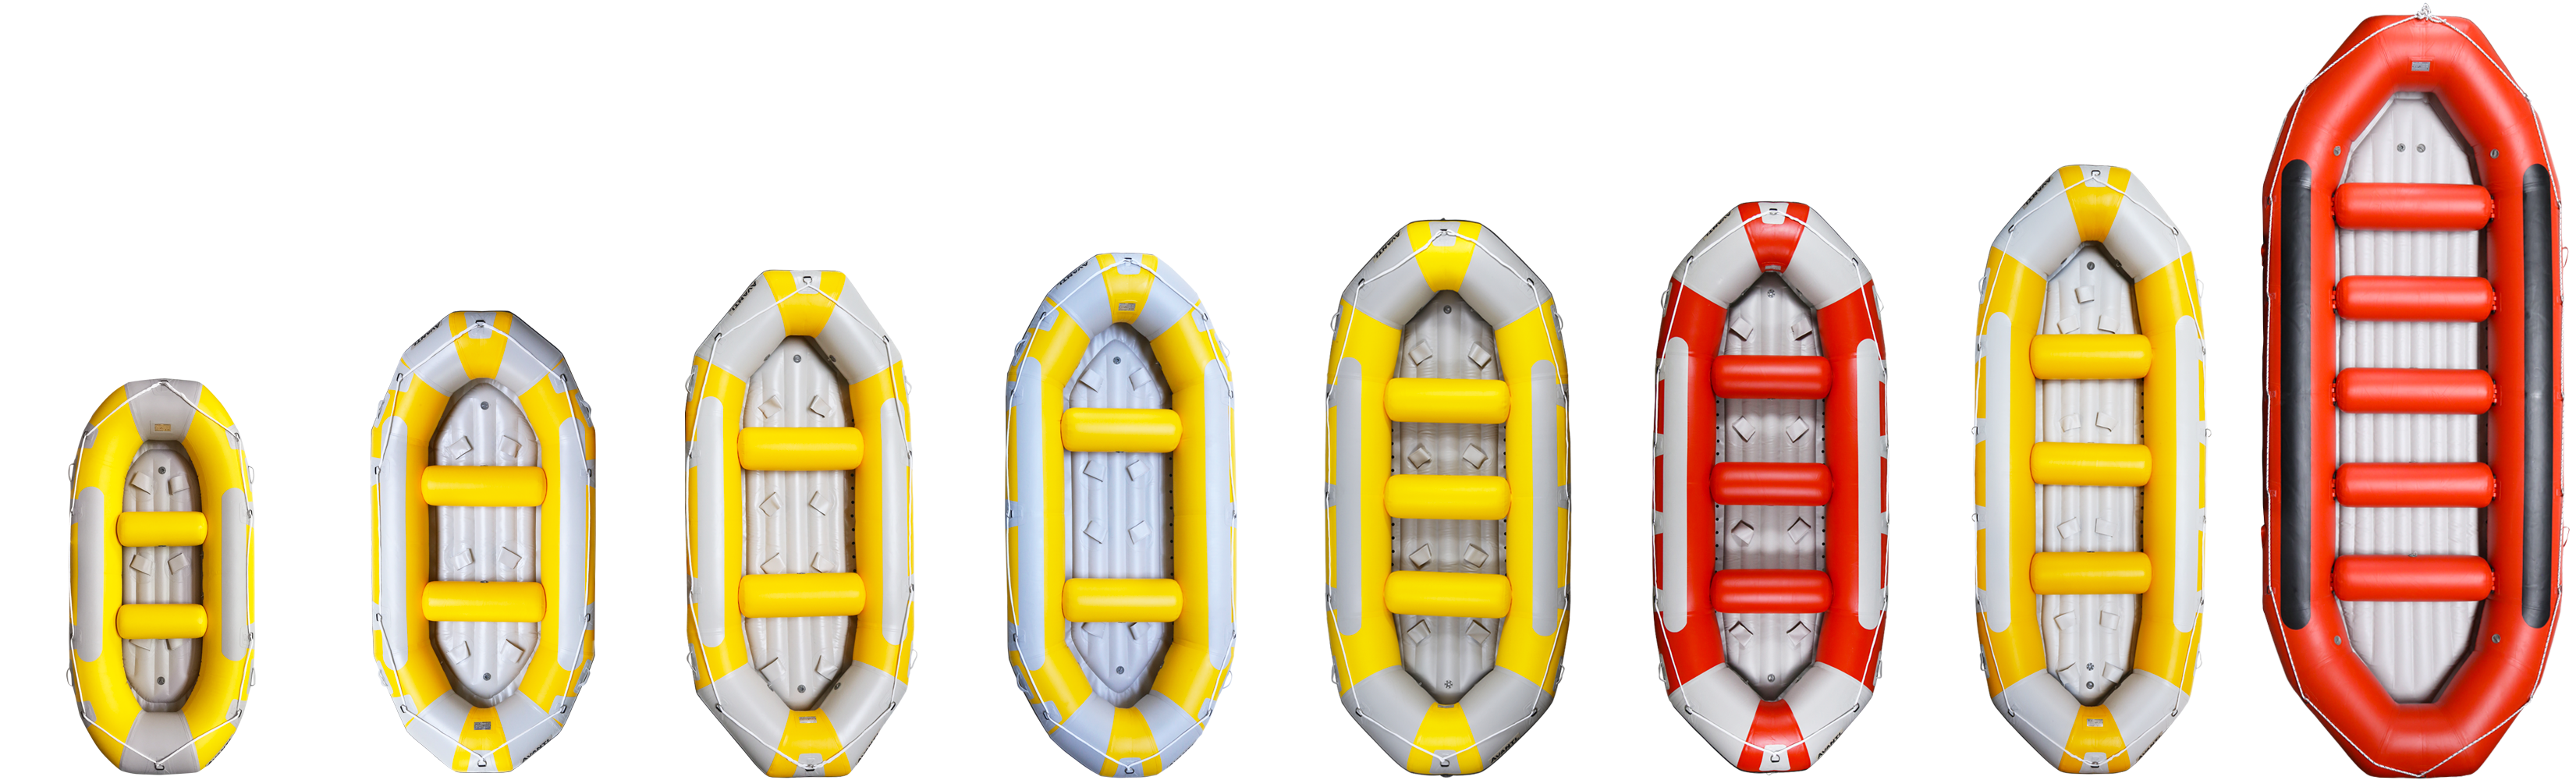 AQUADESIGN RAFT - COMPLETE RANGE OF RAFTING BOATSG